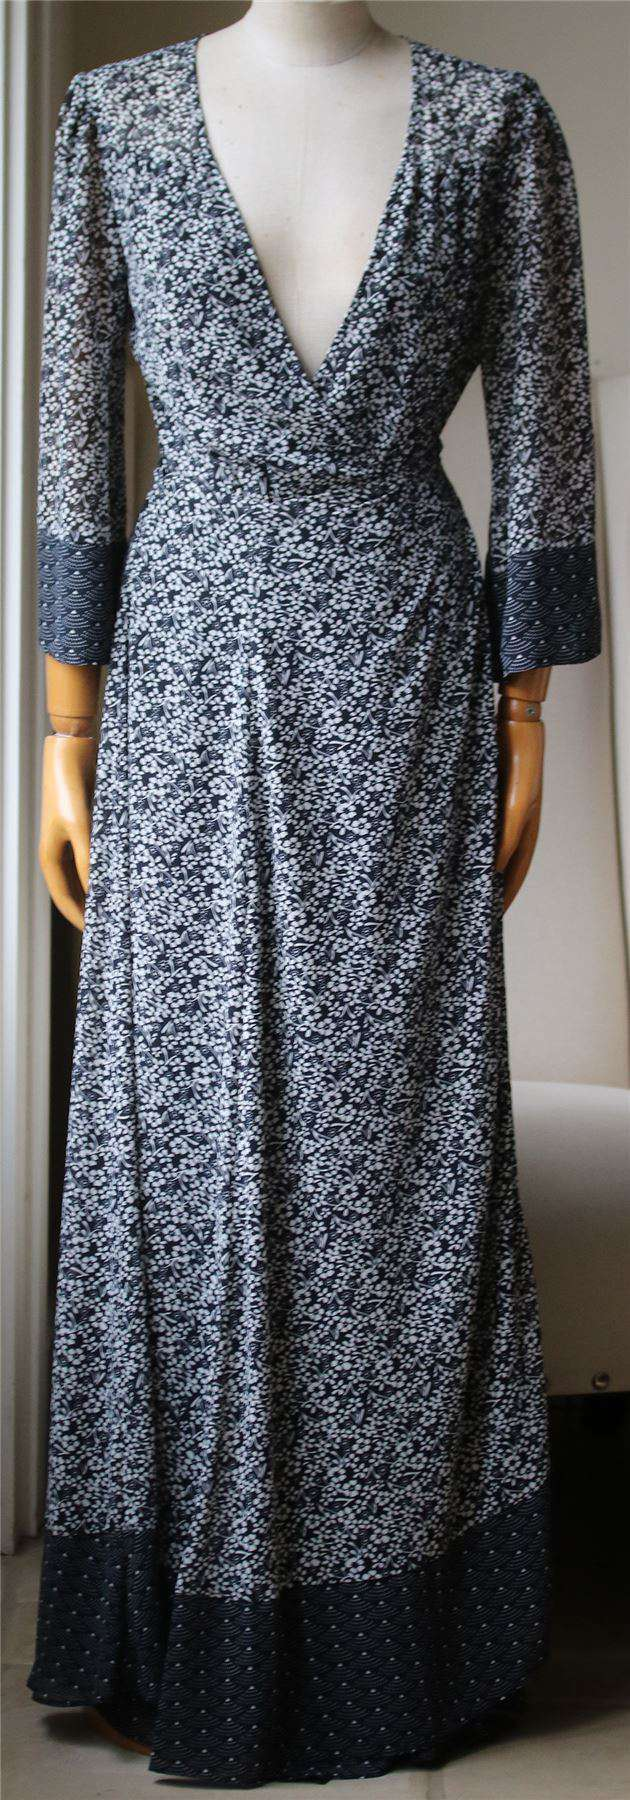 TULAROSA JOLENE FLORAL PRINT WRAP MAXI DRESS MEDIUM